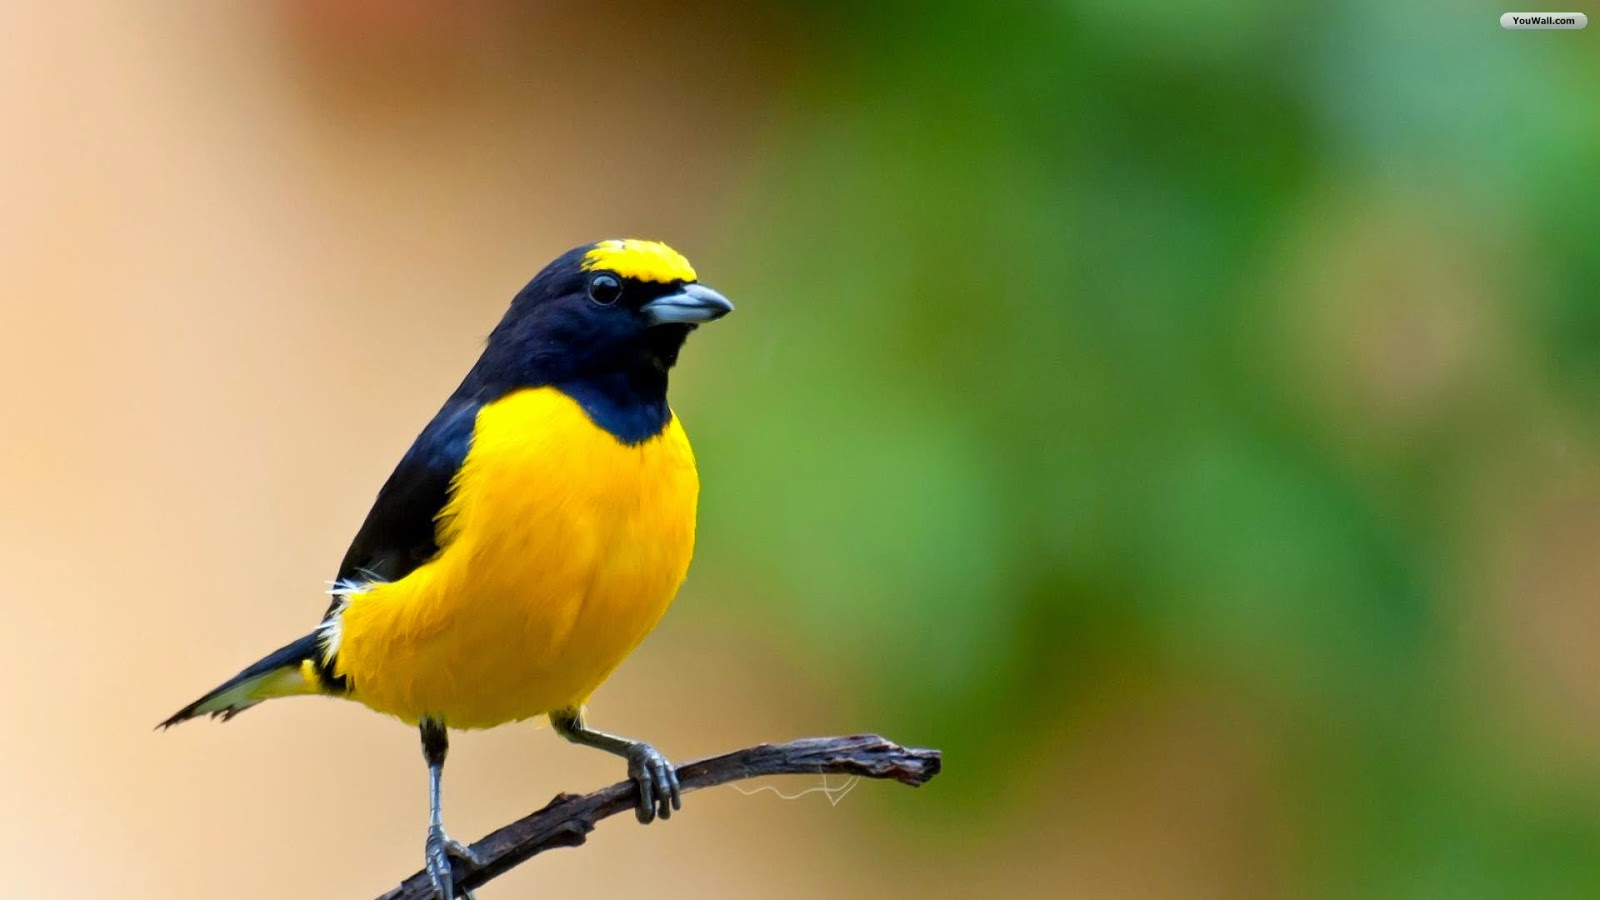 Different color birds 39 s hd wallpapers photos 2014 top 3 - Hd birds images download ...